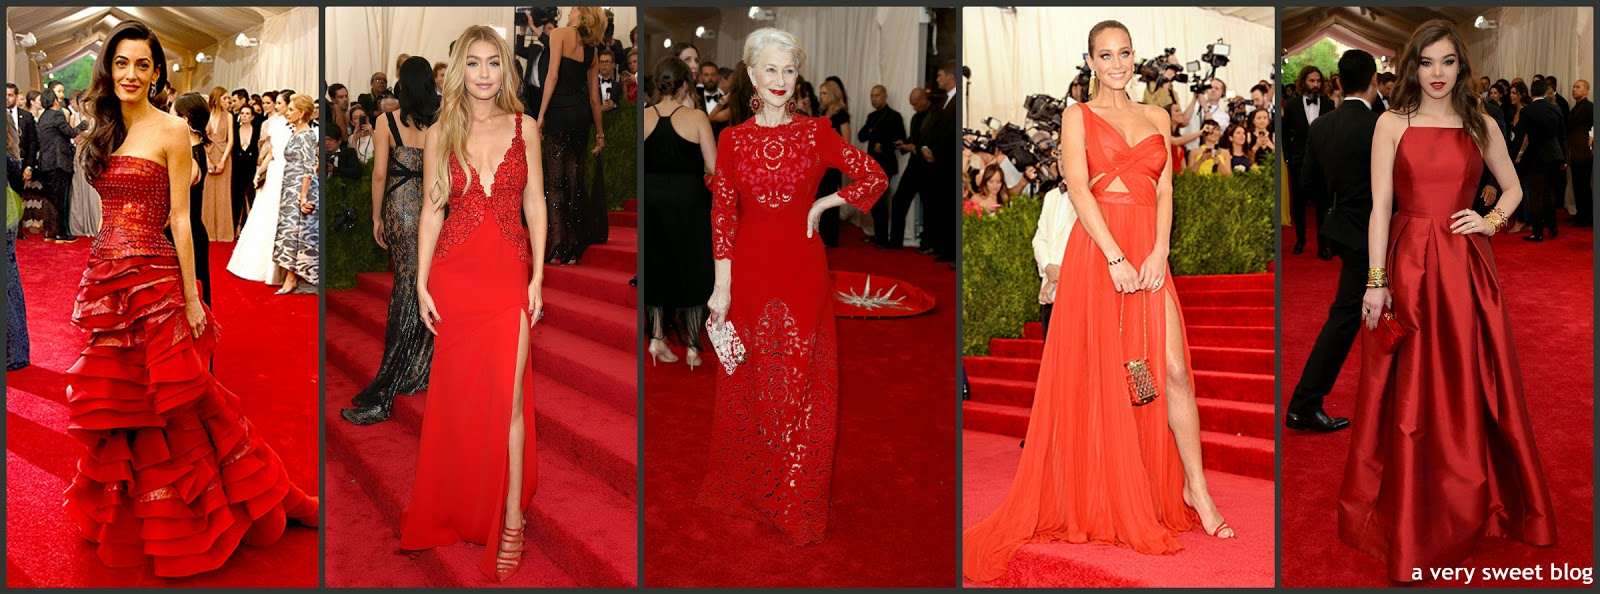 Met Gala 2015 I China Through The Looking Glass | A Very Sweet Blog